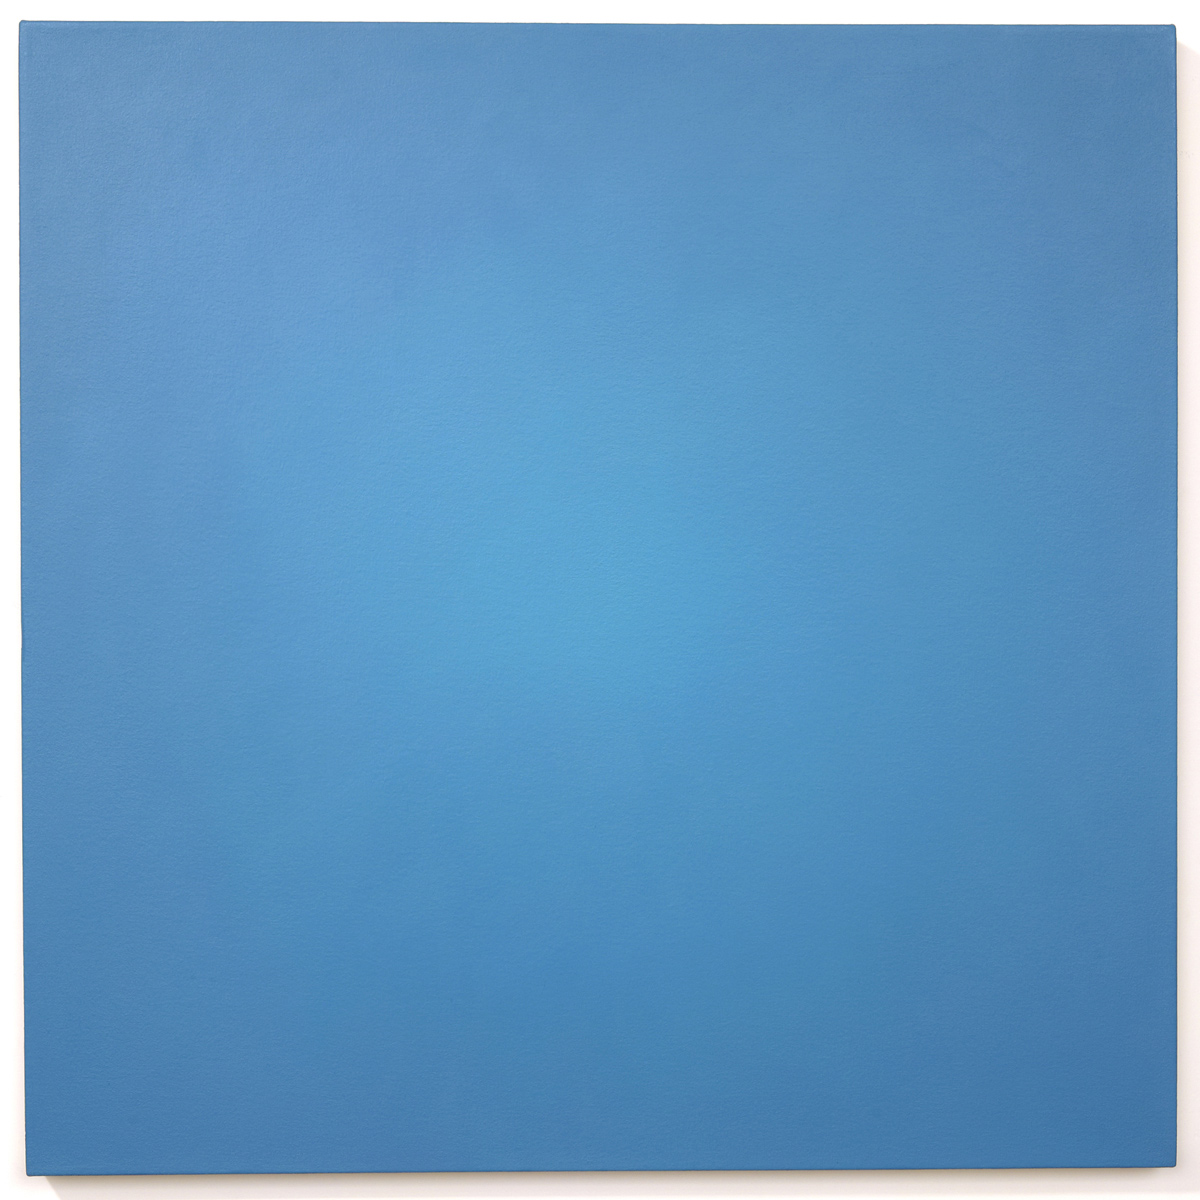 Legacy (Blue Orange), Ray Painting #1, 1997, oil on canvas, 30 x 30 in. (76 x 76 cm.)